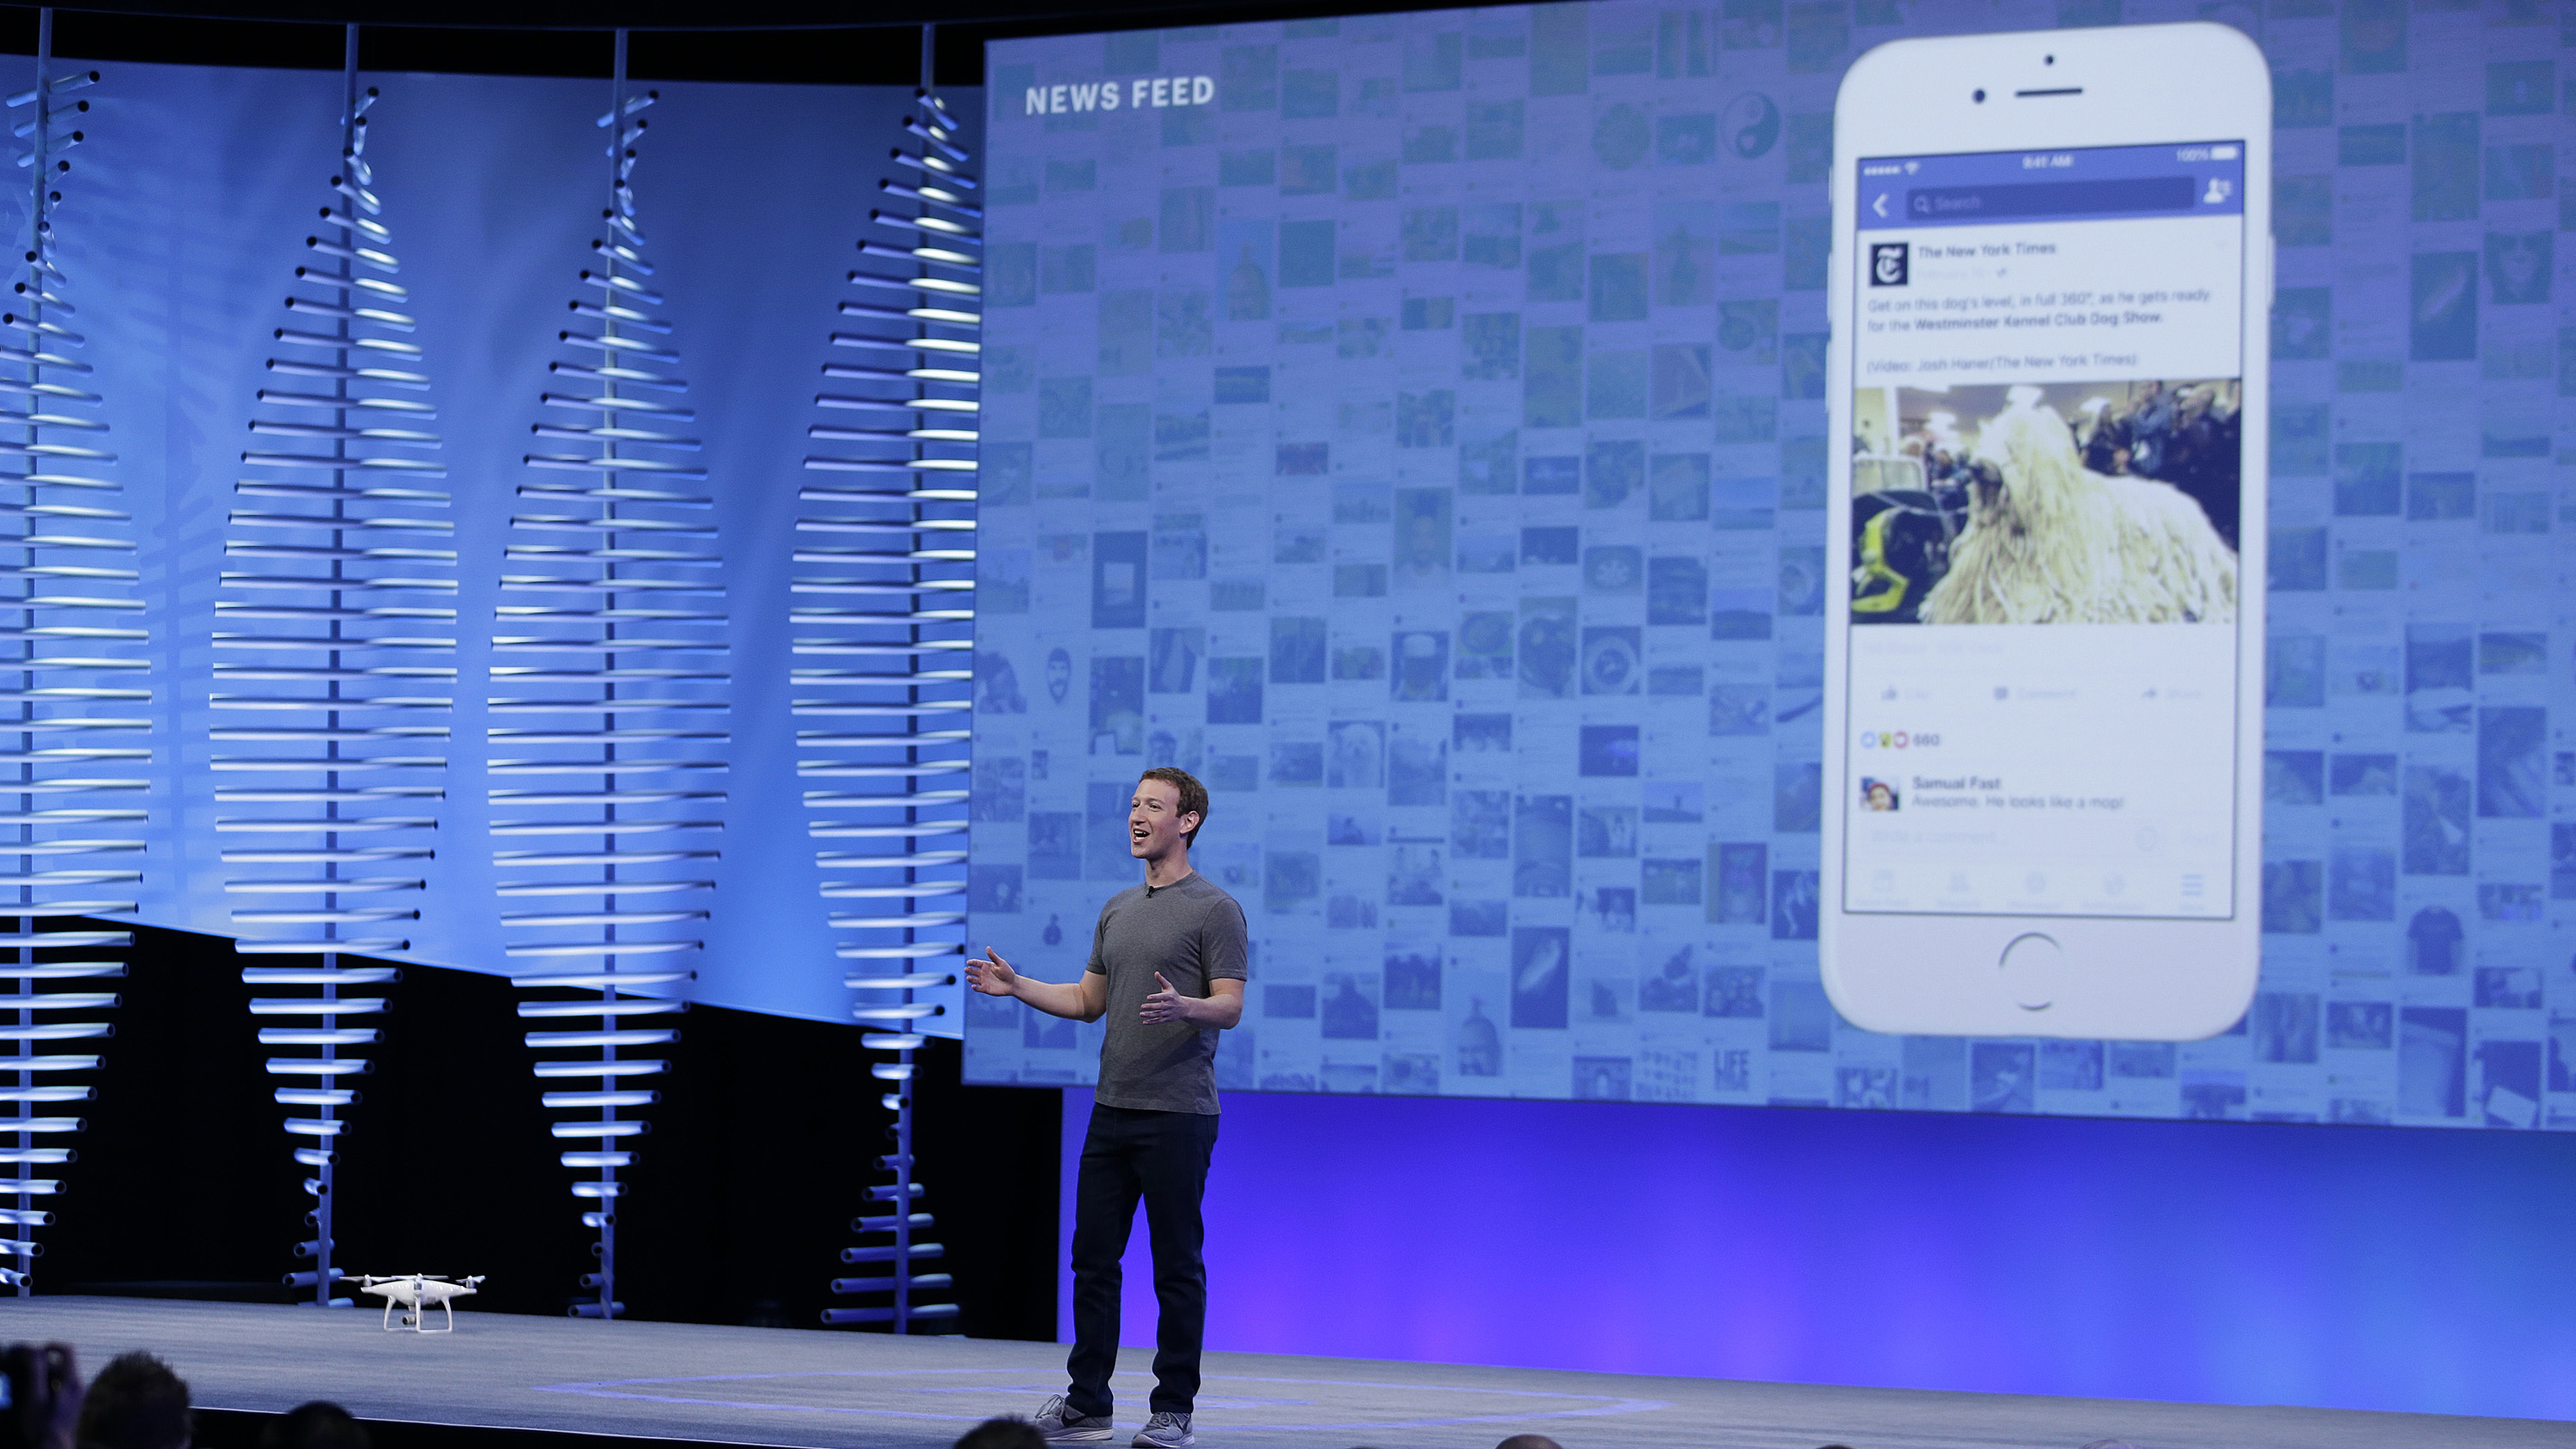 """Facebook CEO Mark Zuckerberg during the keynote address at the F8 Facebook Developer Conference Tuesday, April 12, 2016, in San Francisco. Facebook says people who use its Messenger chat service will soon be able to order flowers, request news articles and talk with businesses by sending them direct text messages. At its annual conference for software developers, Zuckerberg said the company is releasing new tools that businesses can use to build """"chat bots,"""" or programs that talk to customers in conversational language. (AP Photo/Eric Risberg)"""